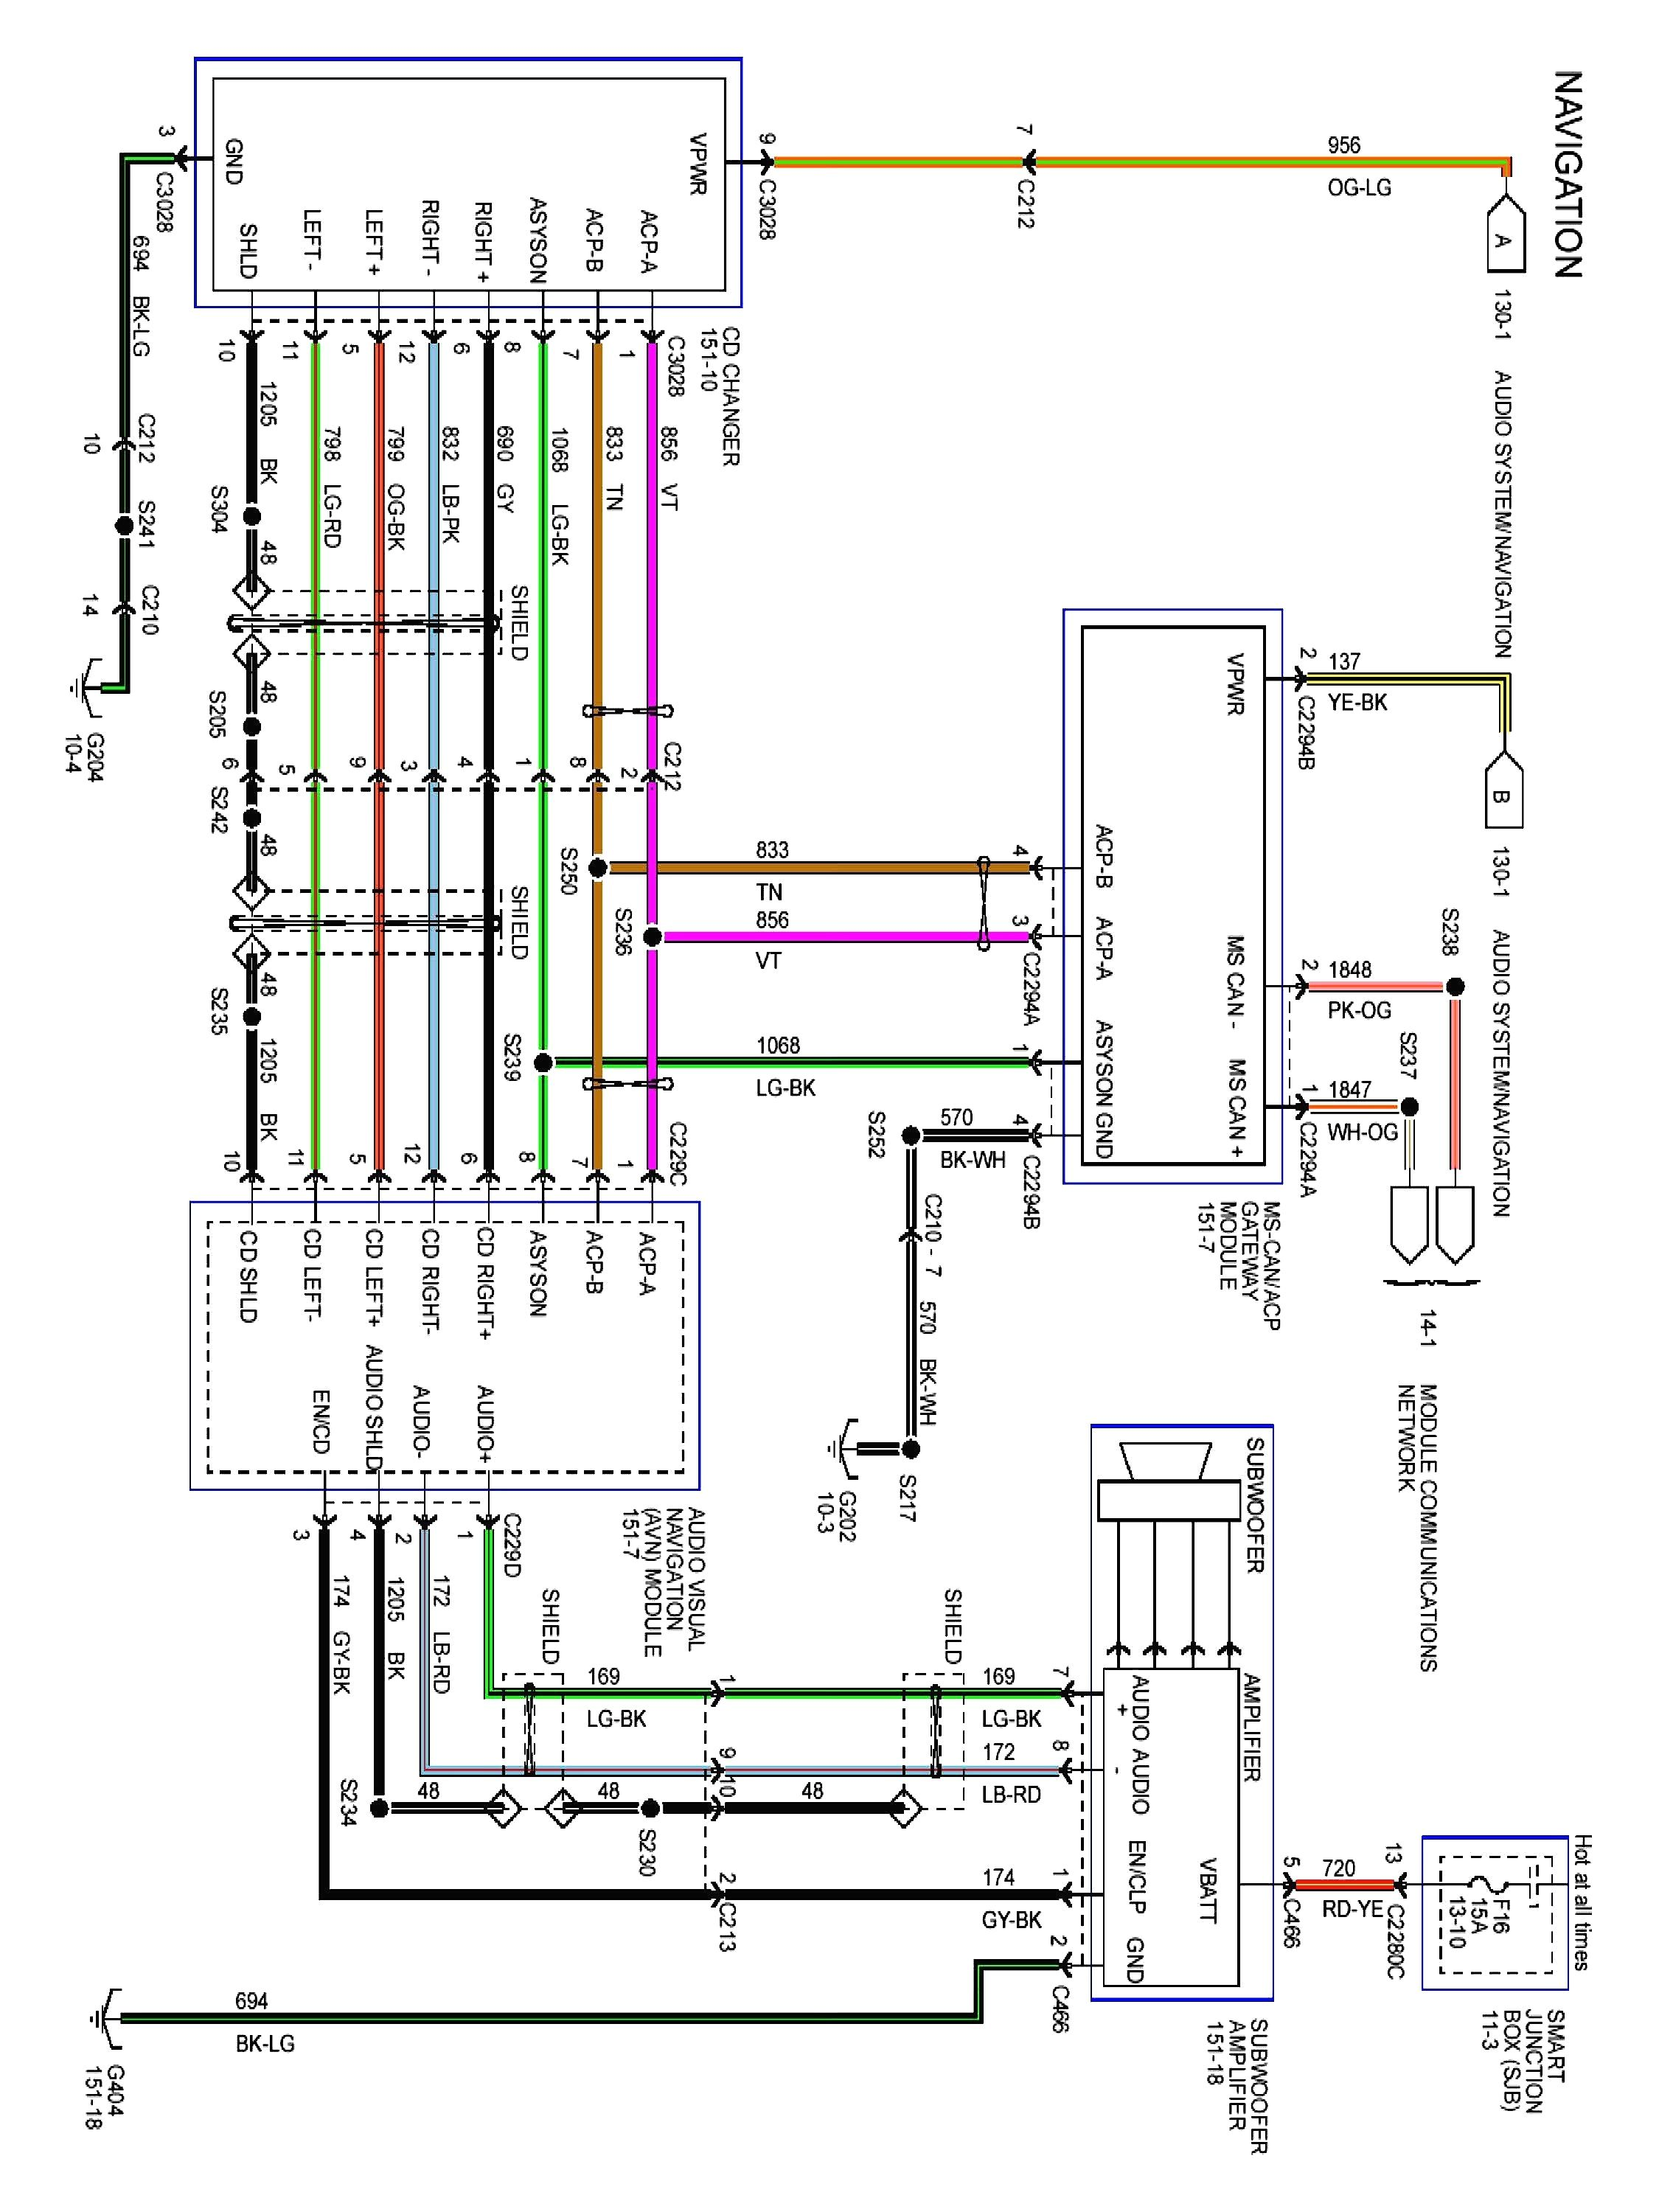 DIAGRAM] 2007 Ford Focus Radio Wiring Diagram FULL Version HD Quality Wiring  Diagram - DIAGRAMMOTOR.JEPIX.FRdiagrammotor.jepix.fr